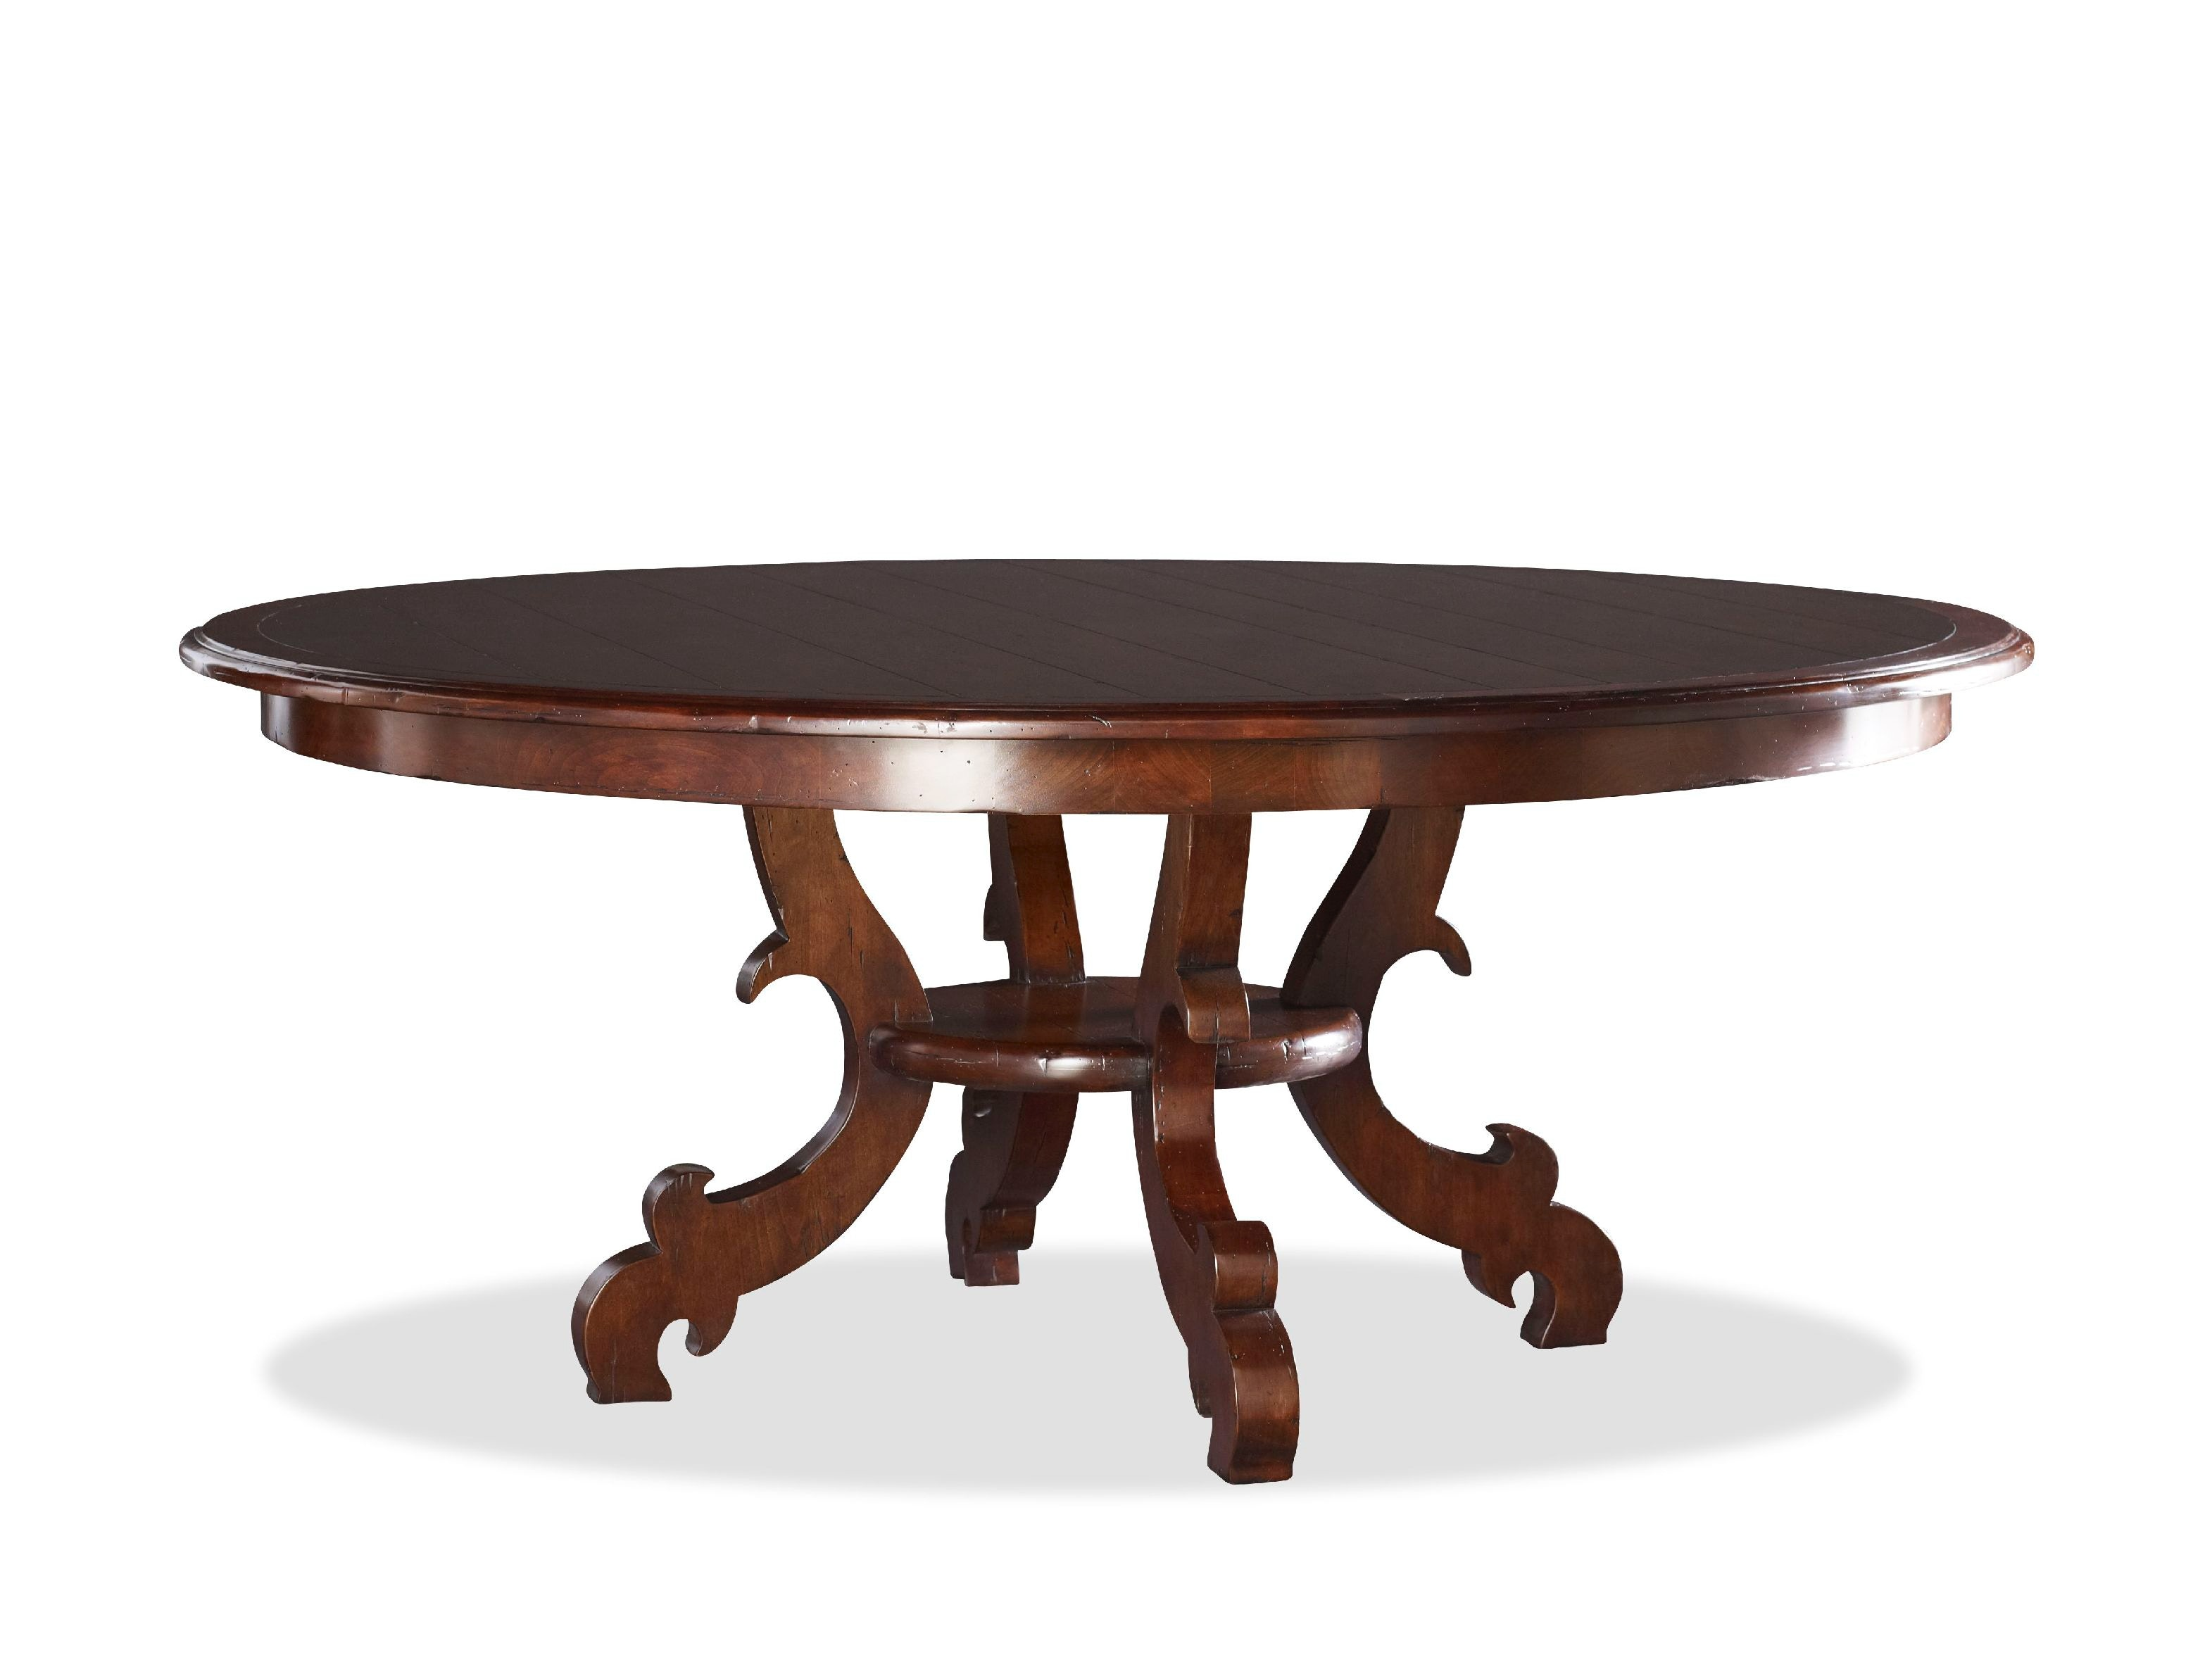 Chaddock Spanish Baroque Round Table CE0894